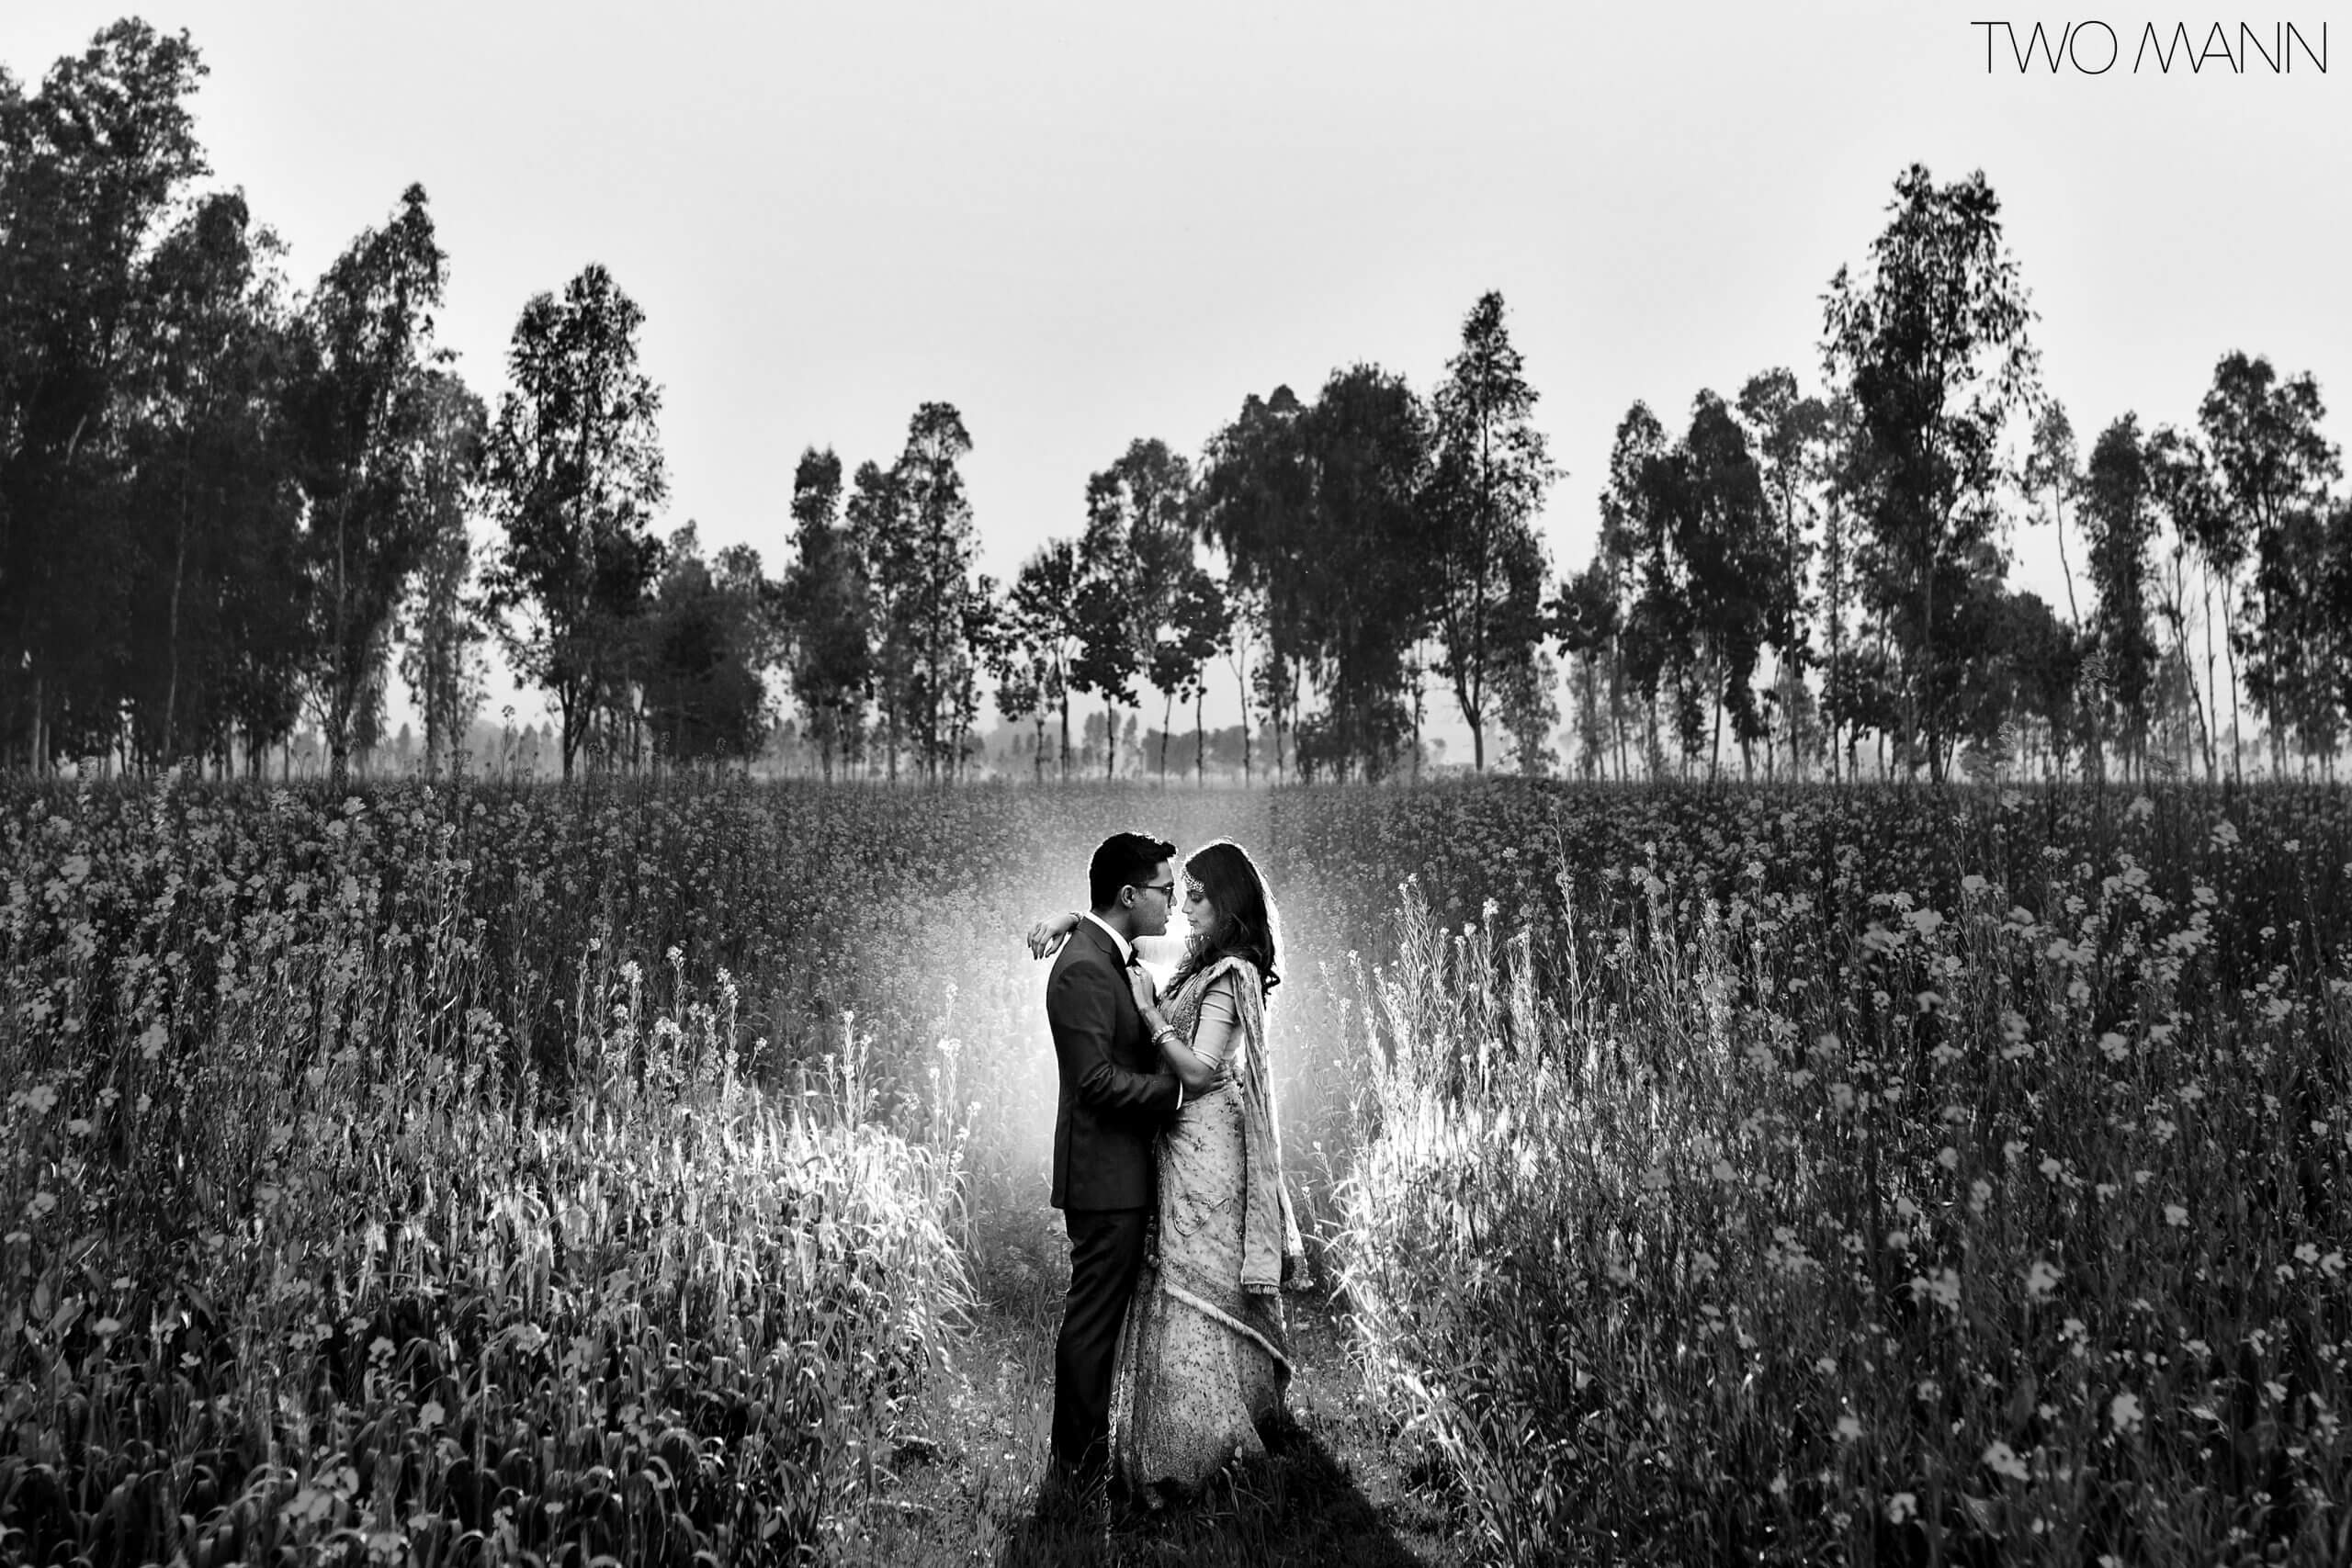 indian bride and groom embracing in the field at dawn